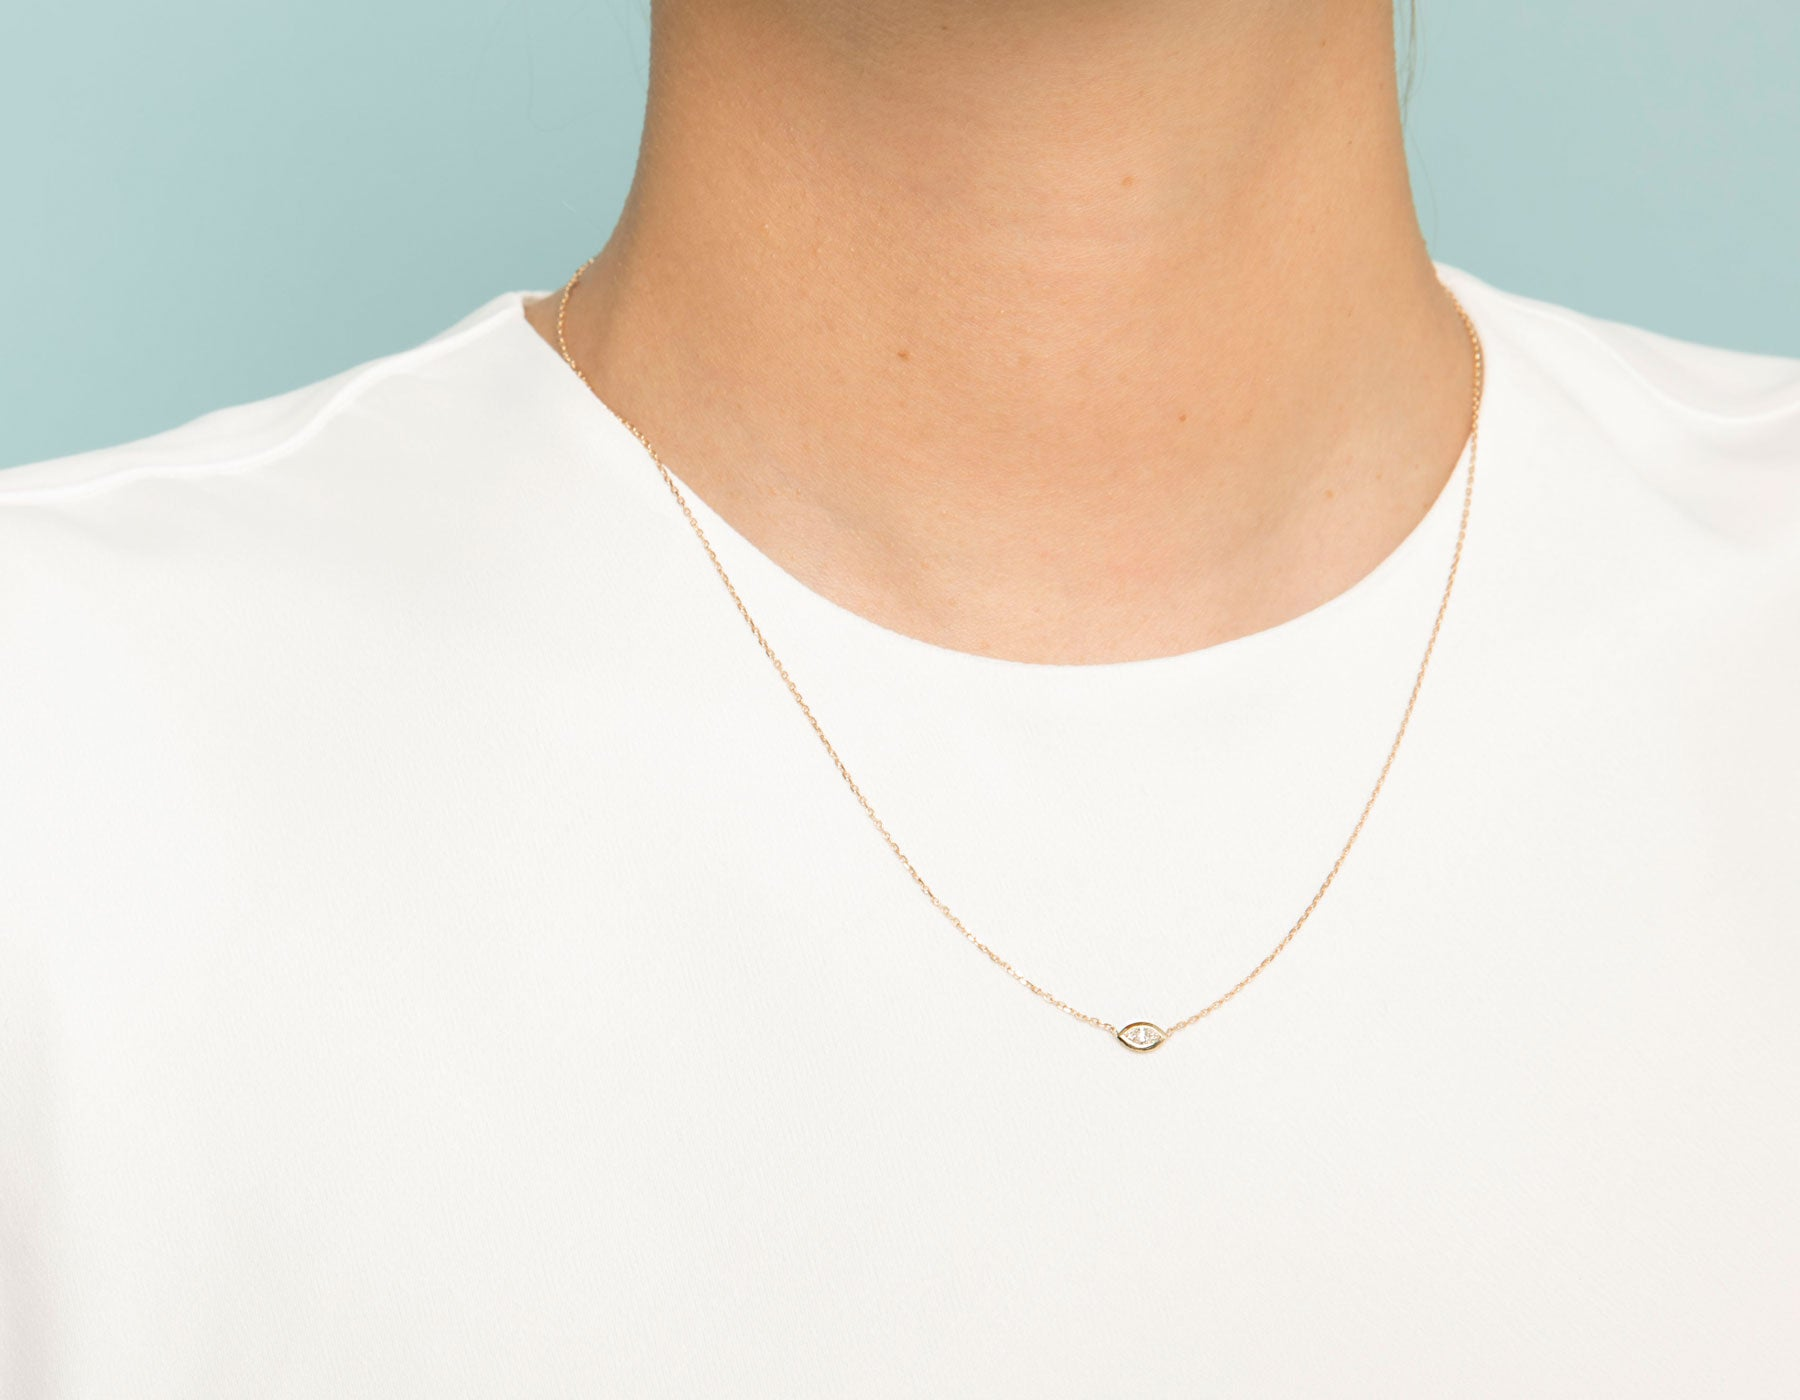 Model wearing dainty minimalist Marquise Diamond Bezel Necklace by Vrai, 14K White Gold